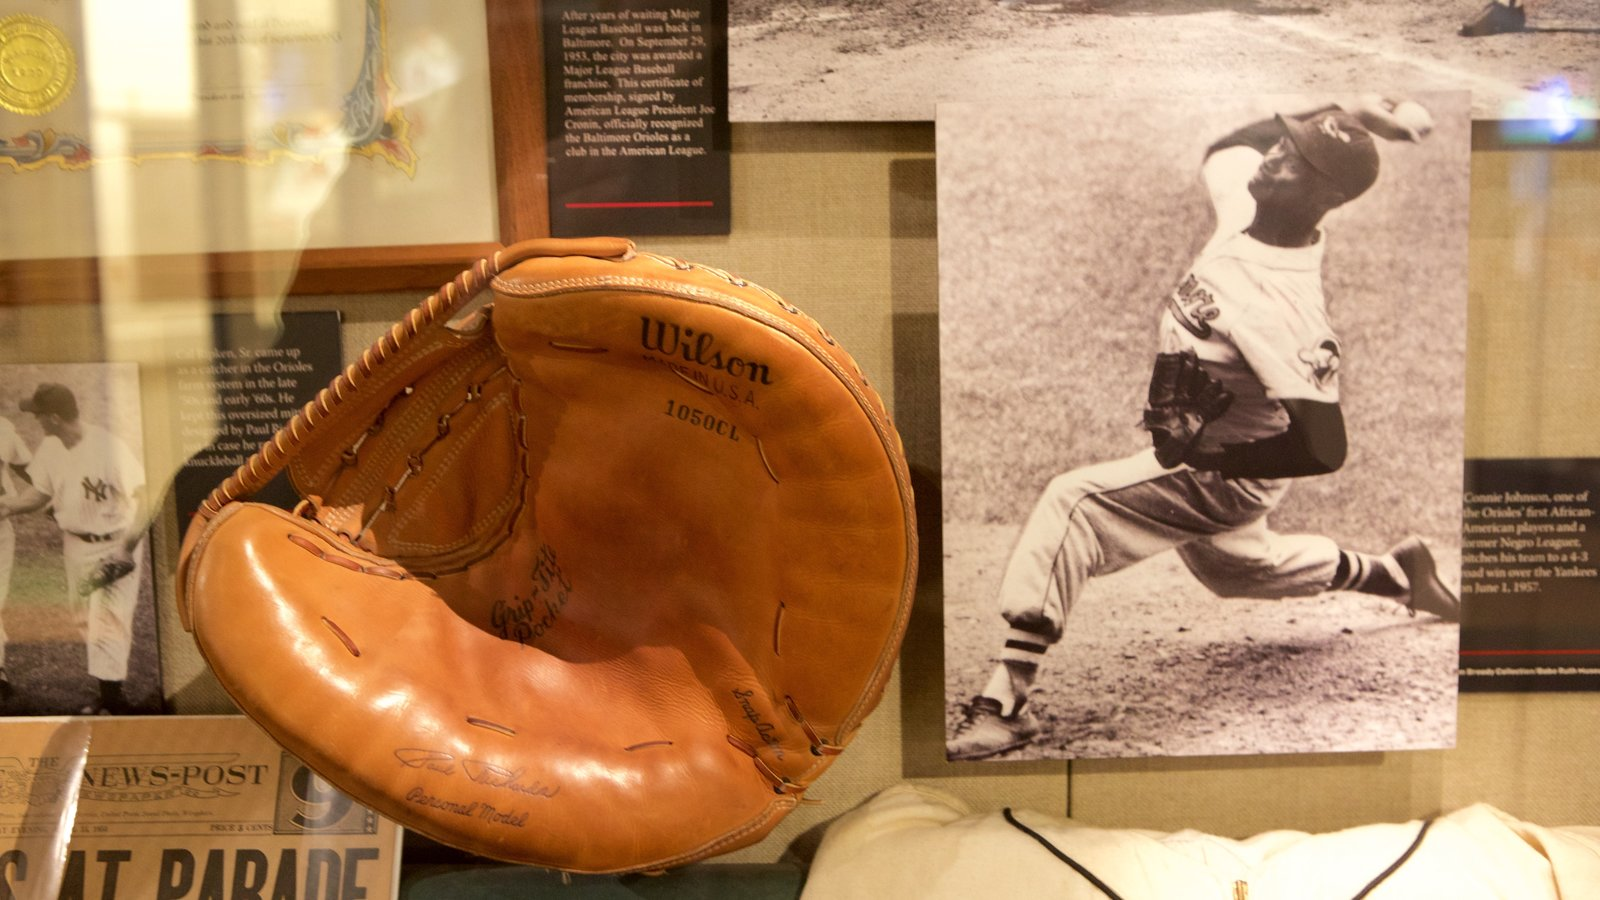 Sports Legends Museum at Camden Yards which includes interior views